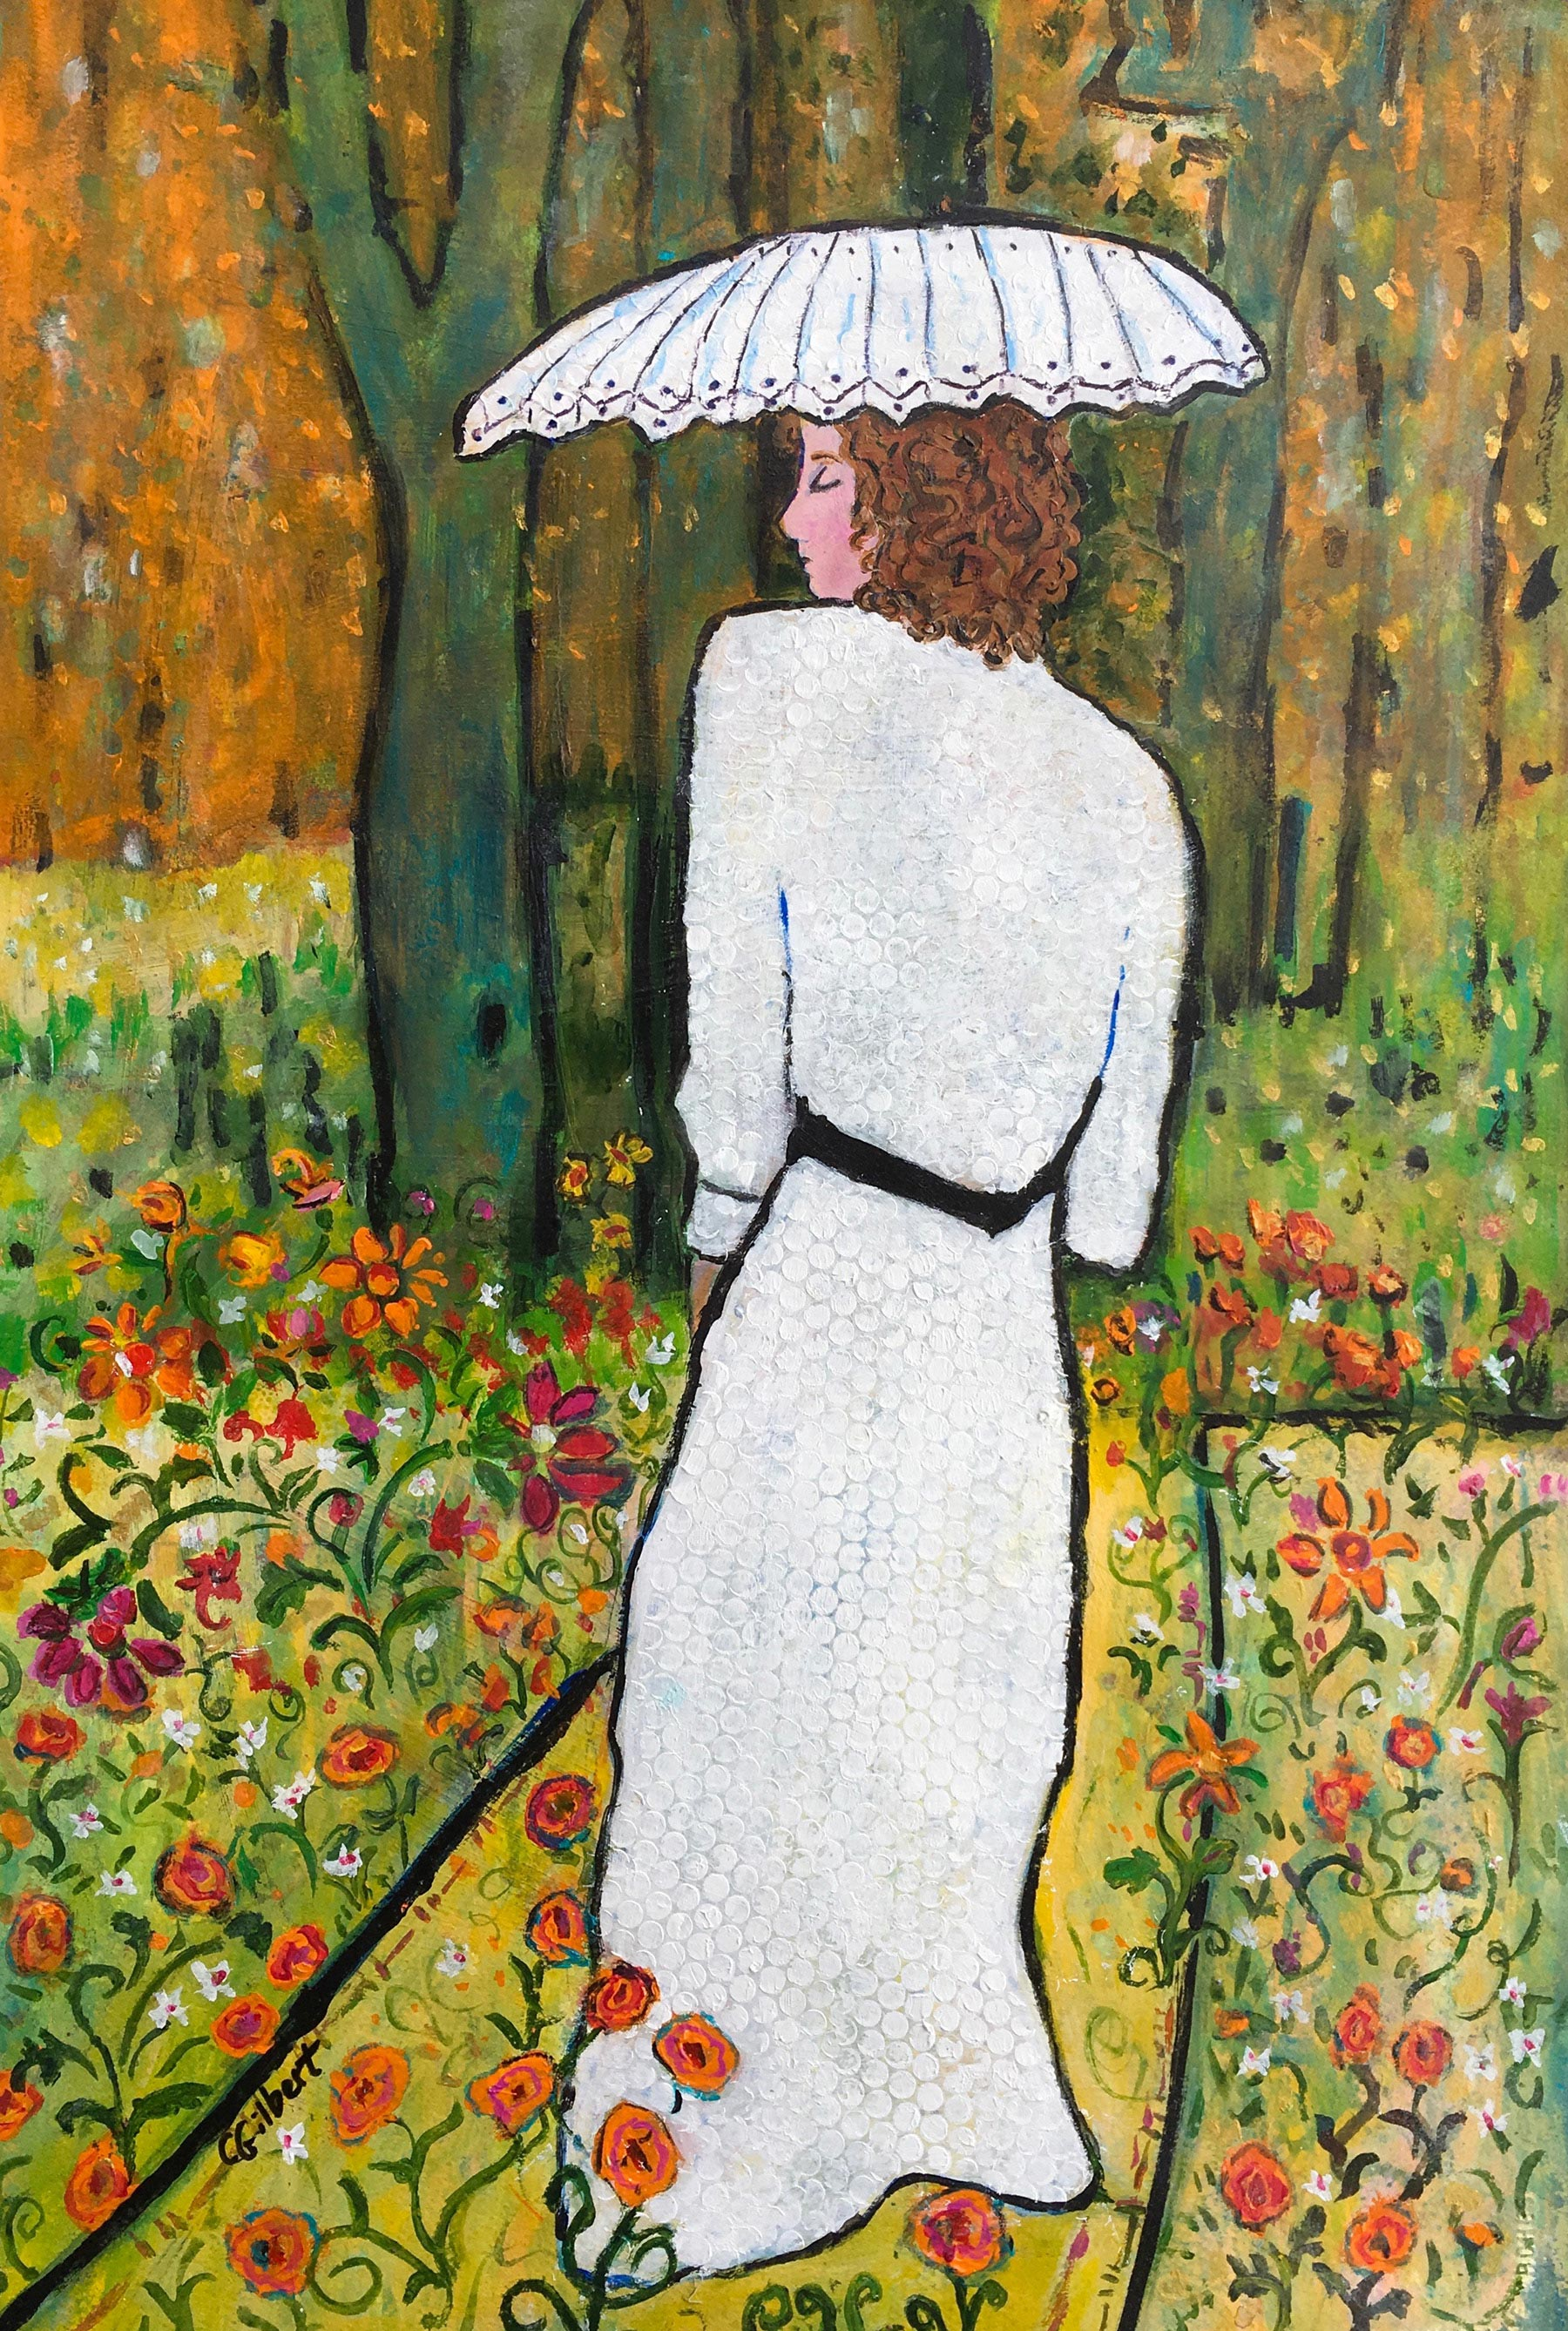 Woman in White with Umbrella